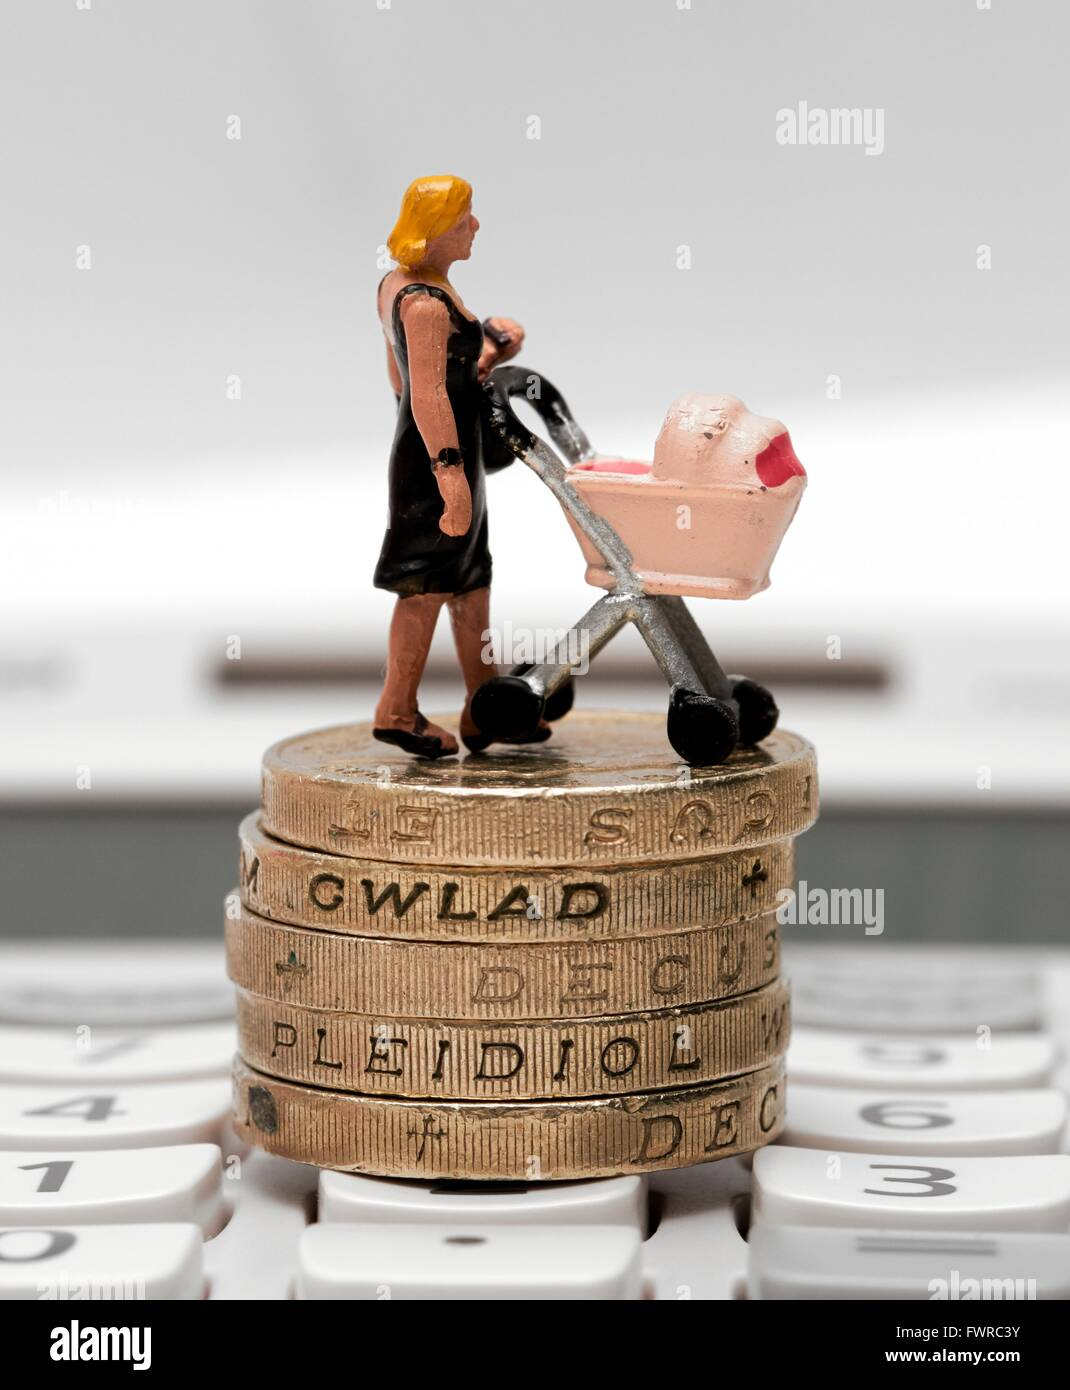 A miniature figurine woman with a pram standing on top of one pound coins - Stock Image